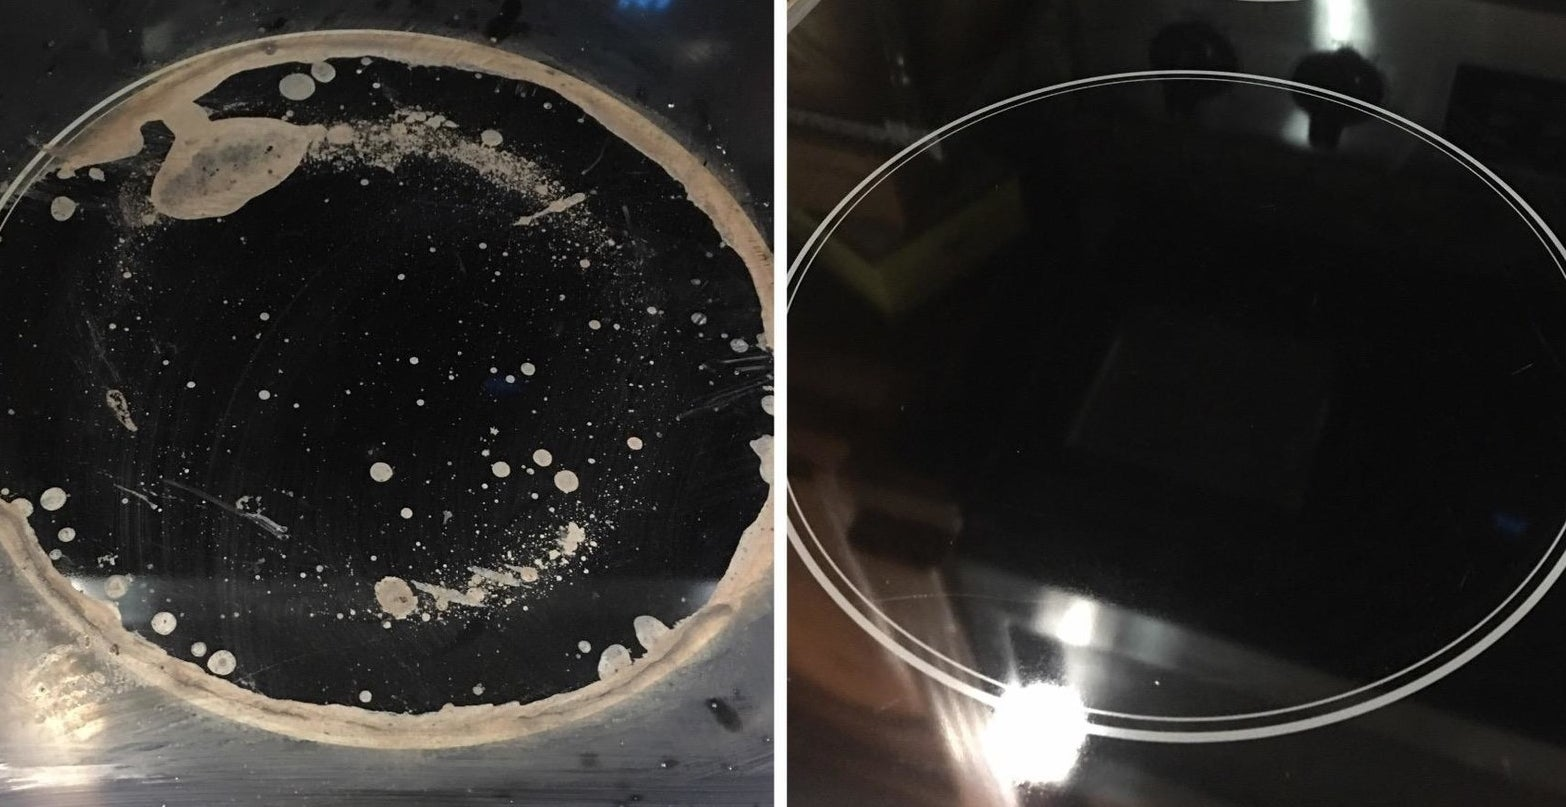 Before and after photos of using the cooktop cleaning kit to scrub an electric stove